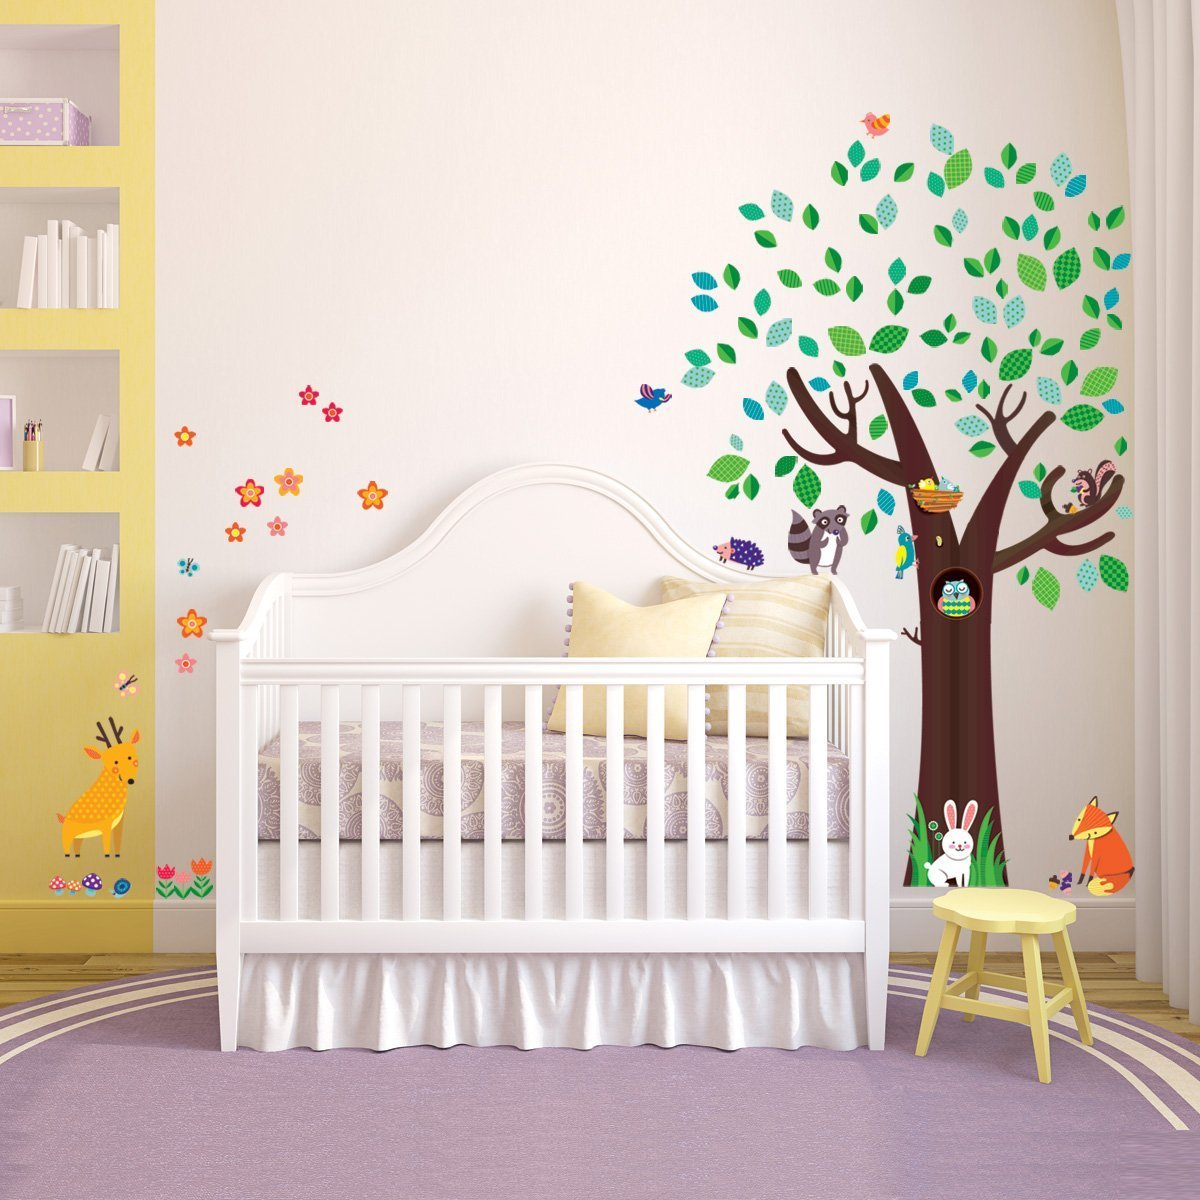 wandtattoo baum kinderzimmer baum wandtattoo im. Black Bedroom Furniture Sets. Home Design Ideas